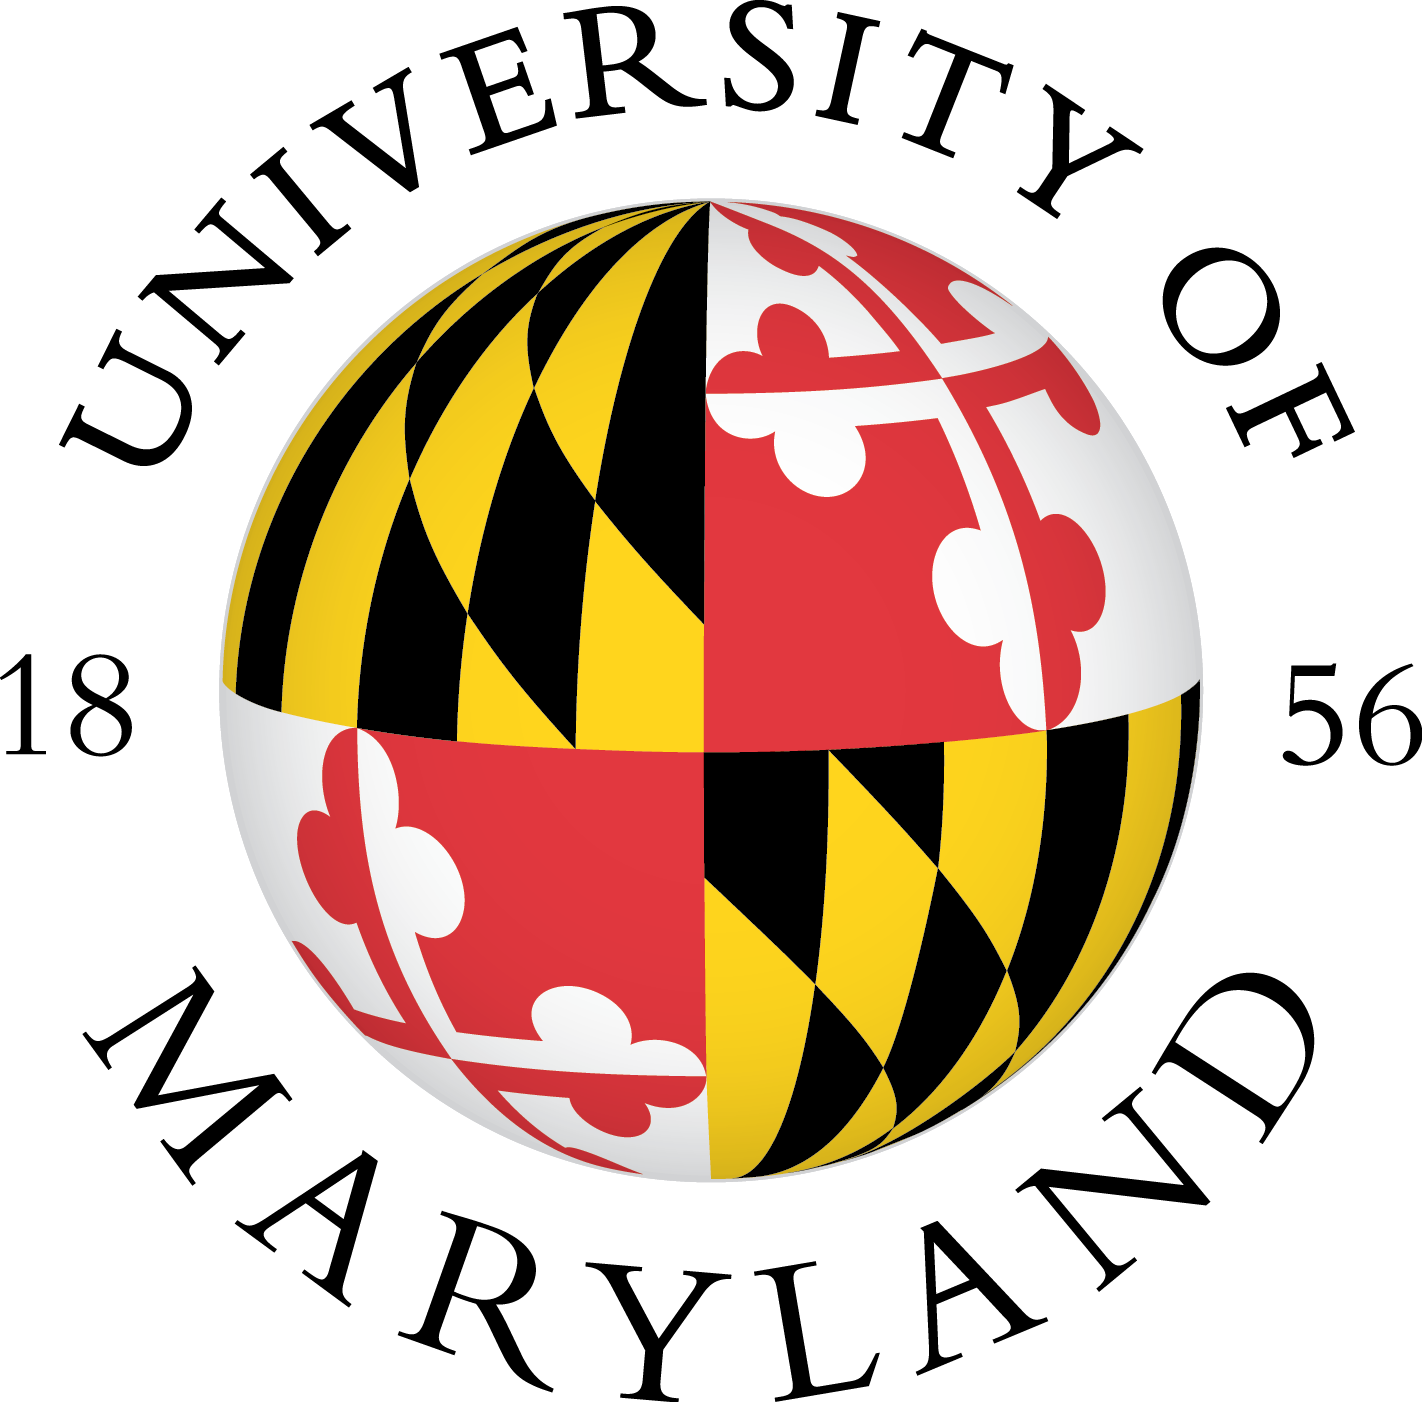 The University of Maryland